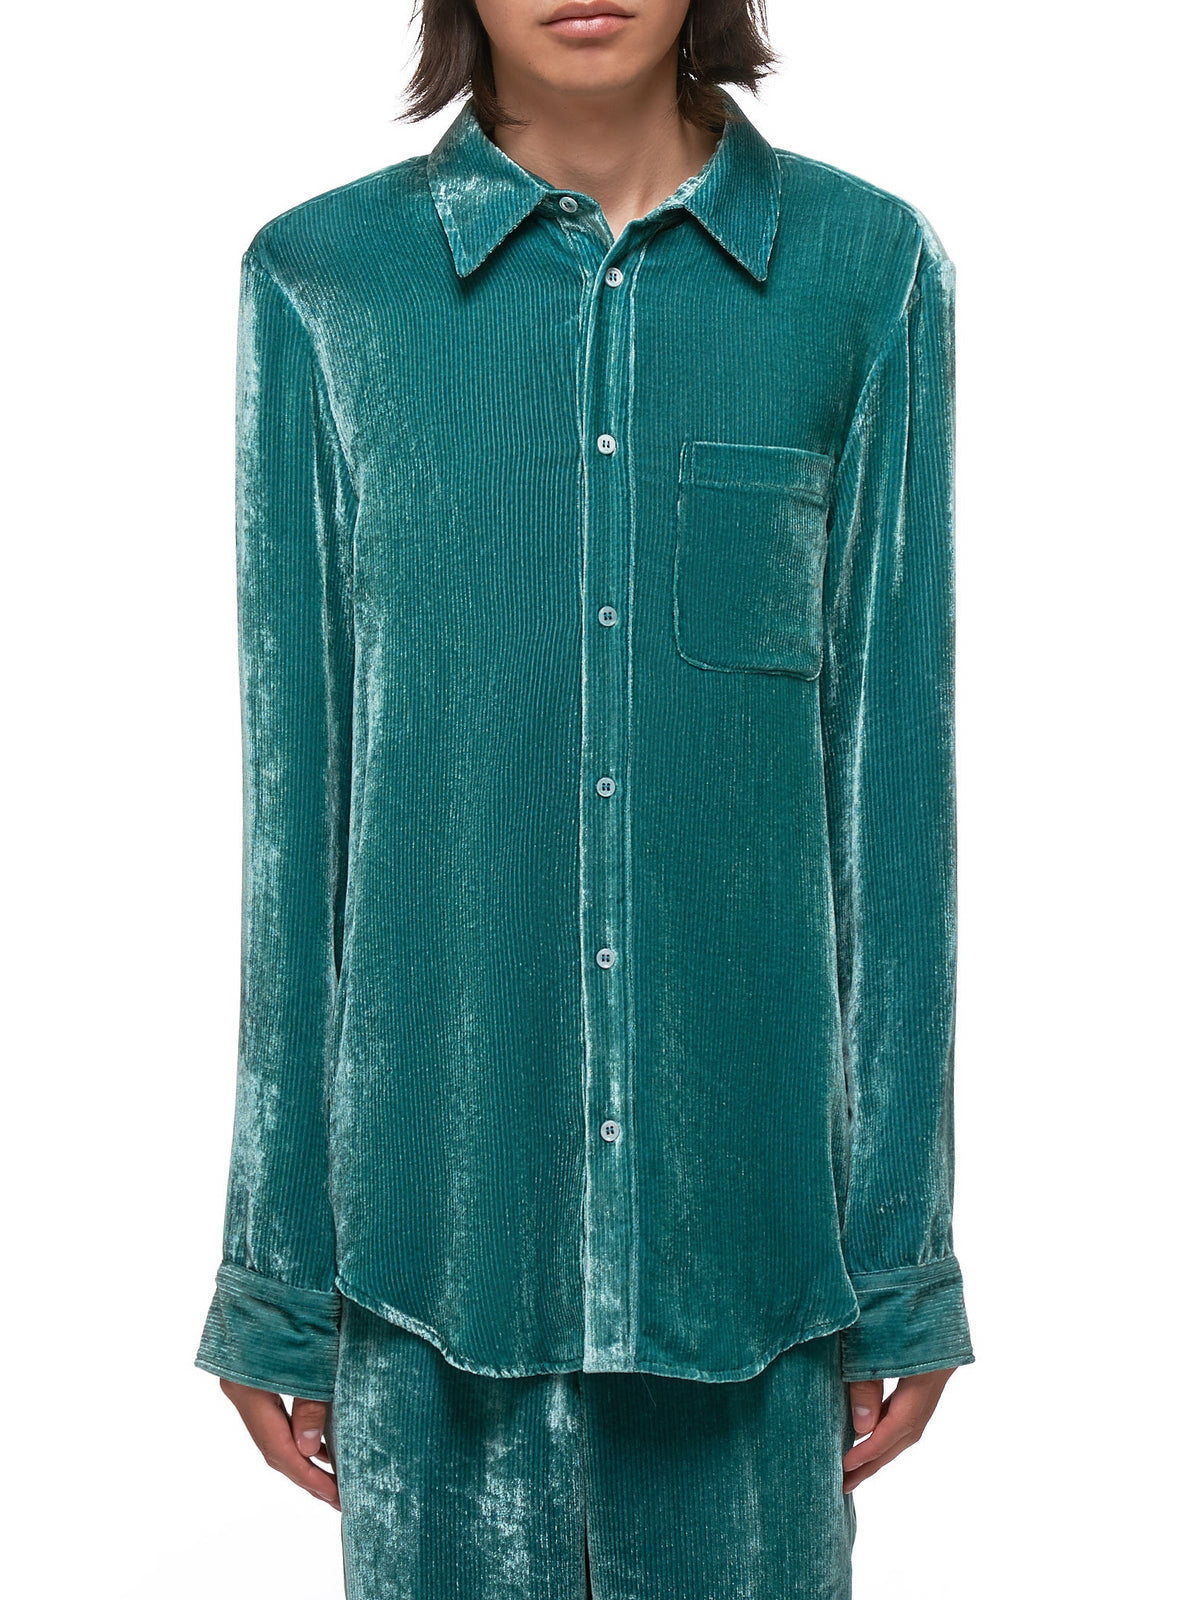 Sander Fluid Cord Shirt (M7FC301-GREEN)